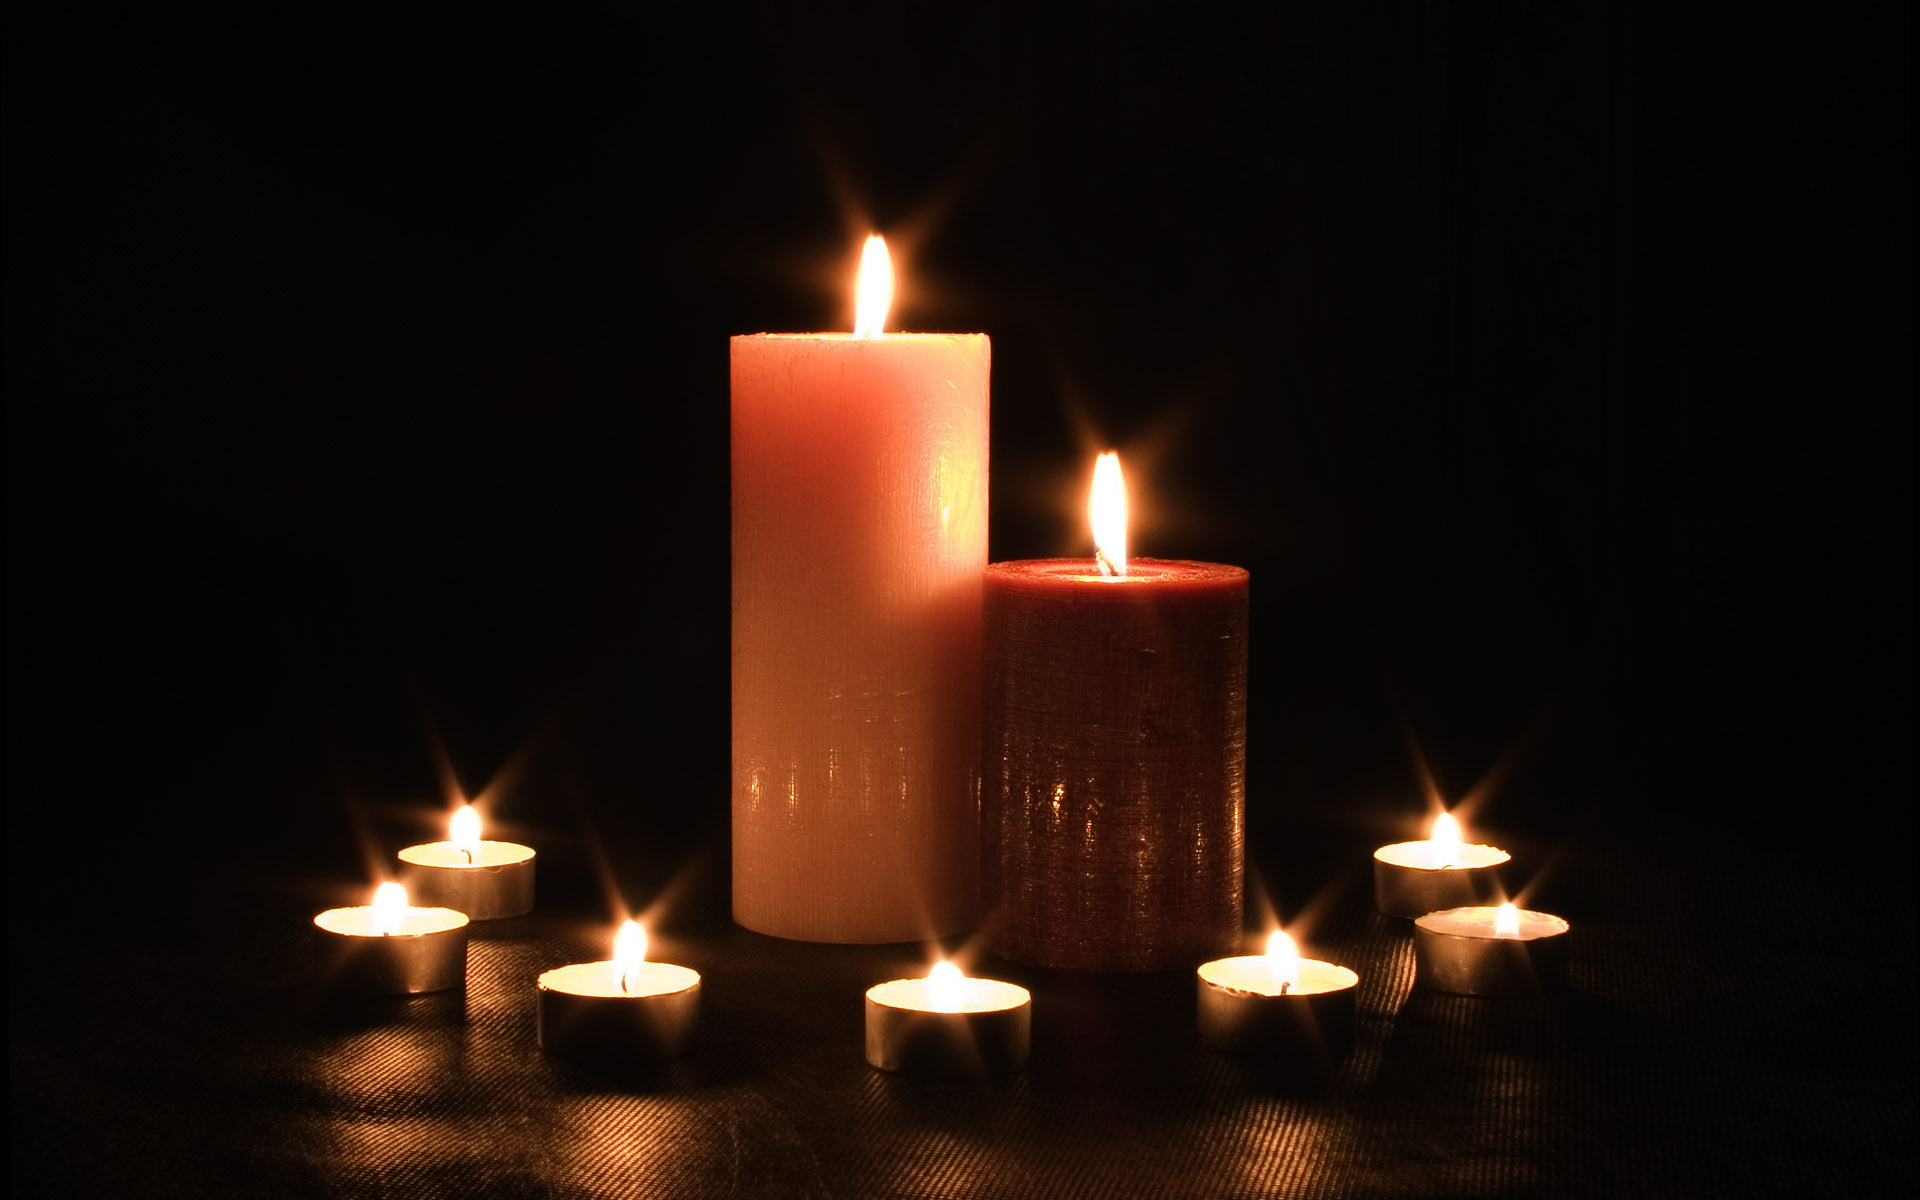 Candle wallpaper 8659